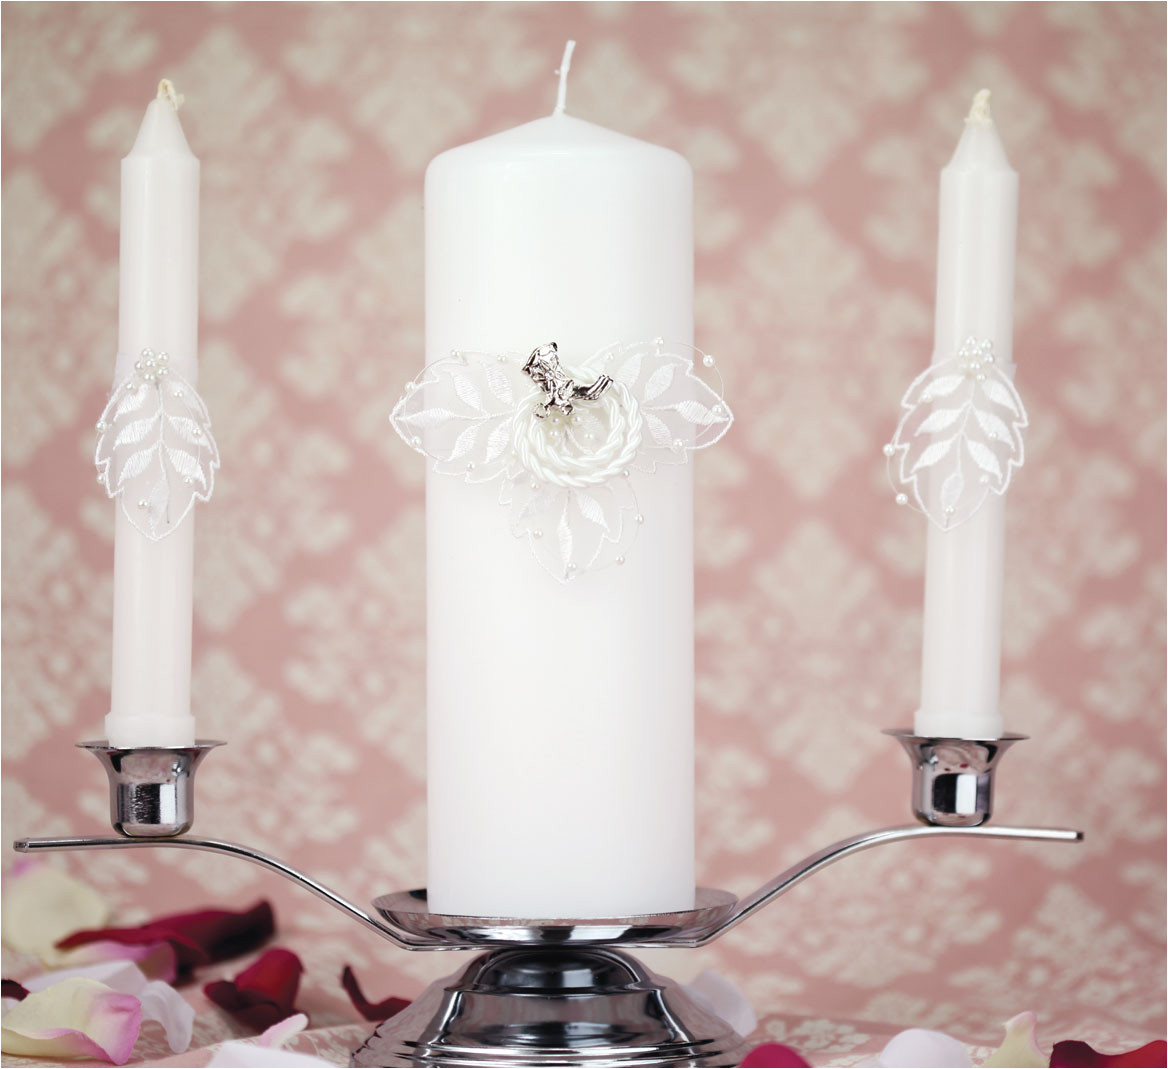 full size of accessories unity wedding candles luxury scented candles wedding candles wholesale unscented votive candles